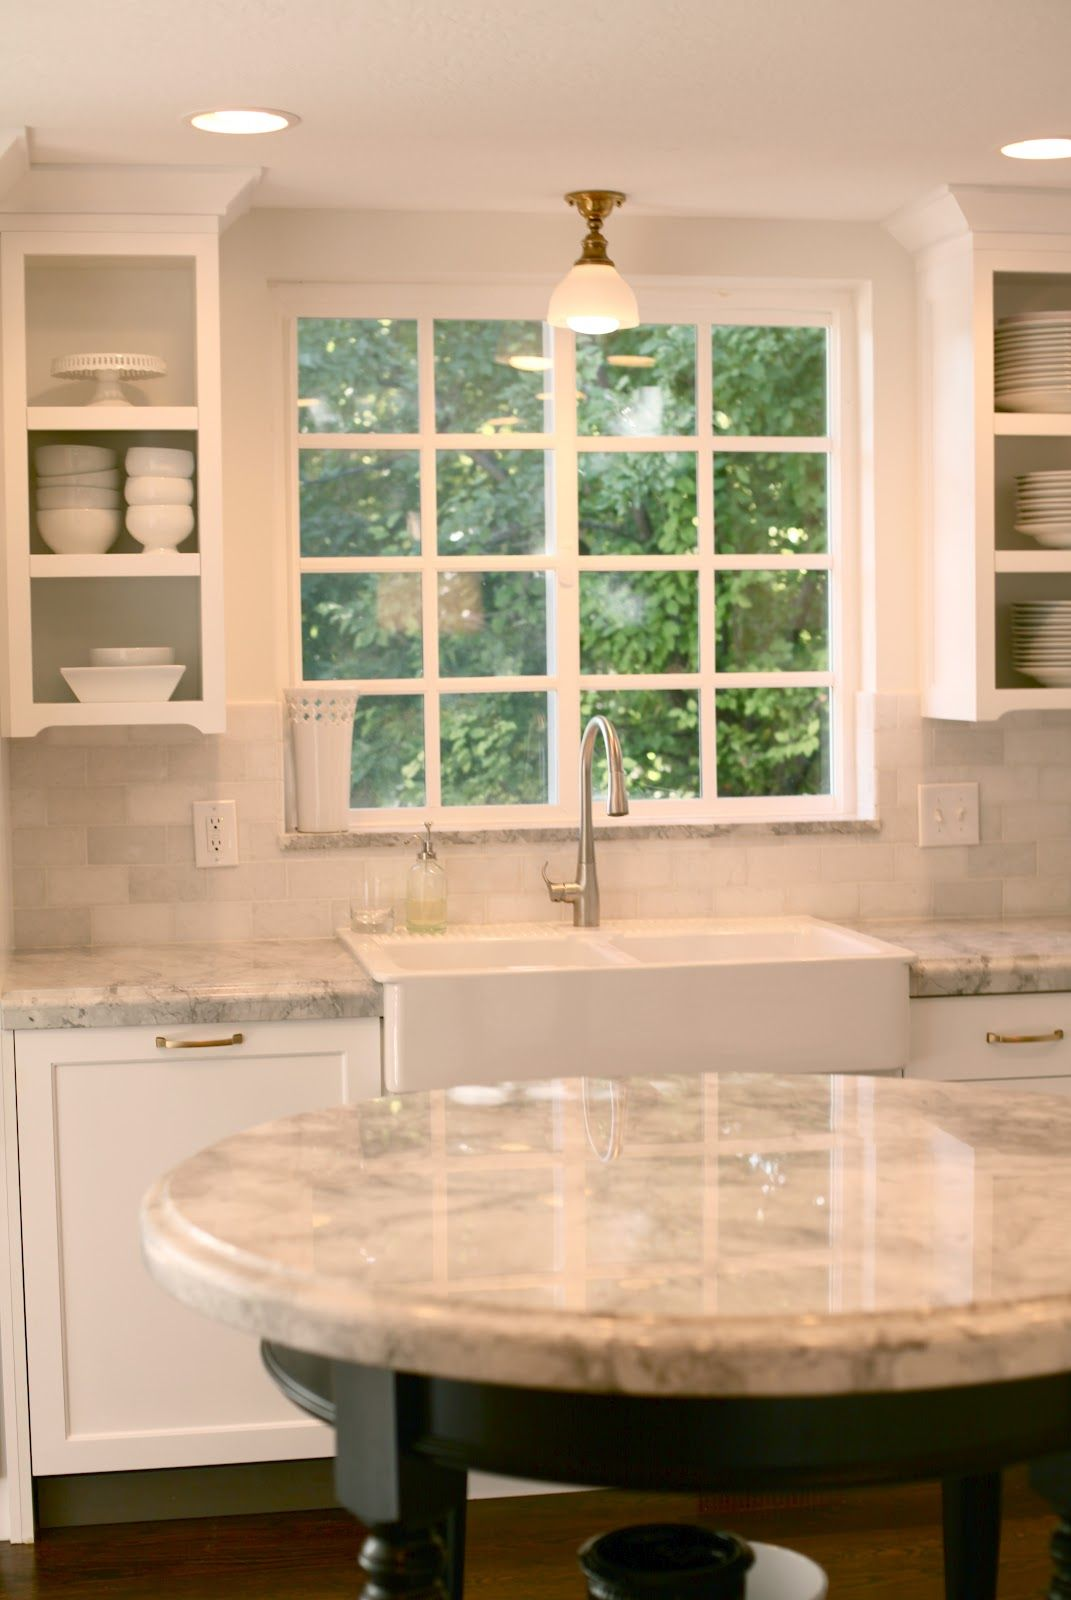 Bianco Romano Granite Kitchen Afraid Of Fragile Marble Go With The Super White Quartzite Or